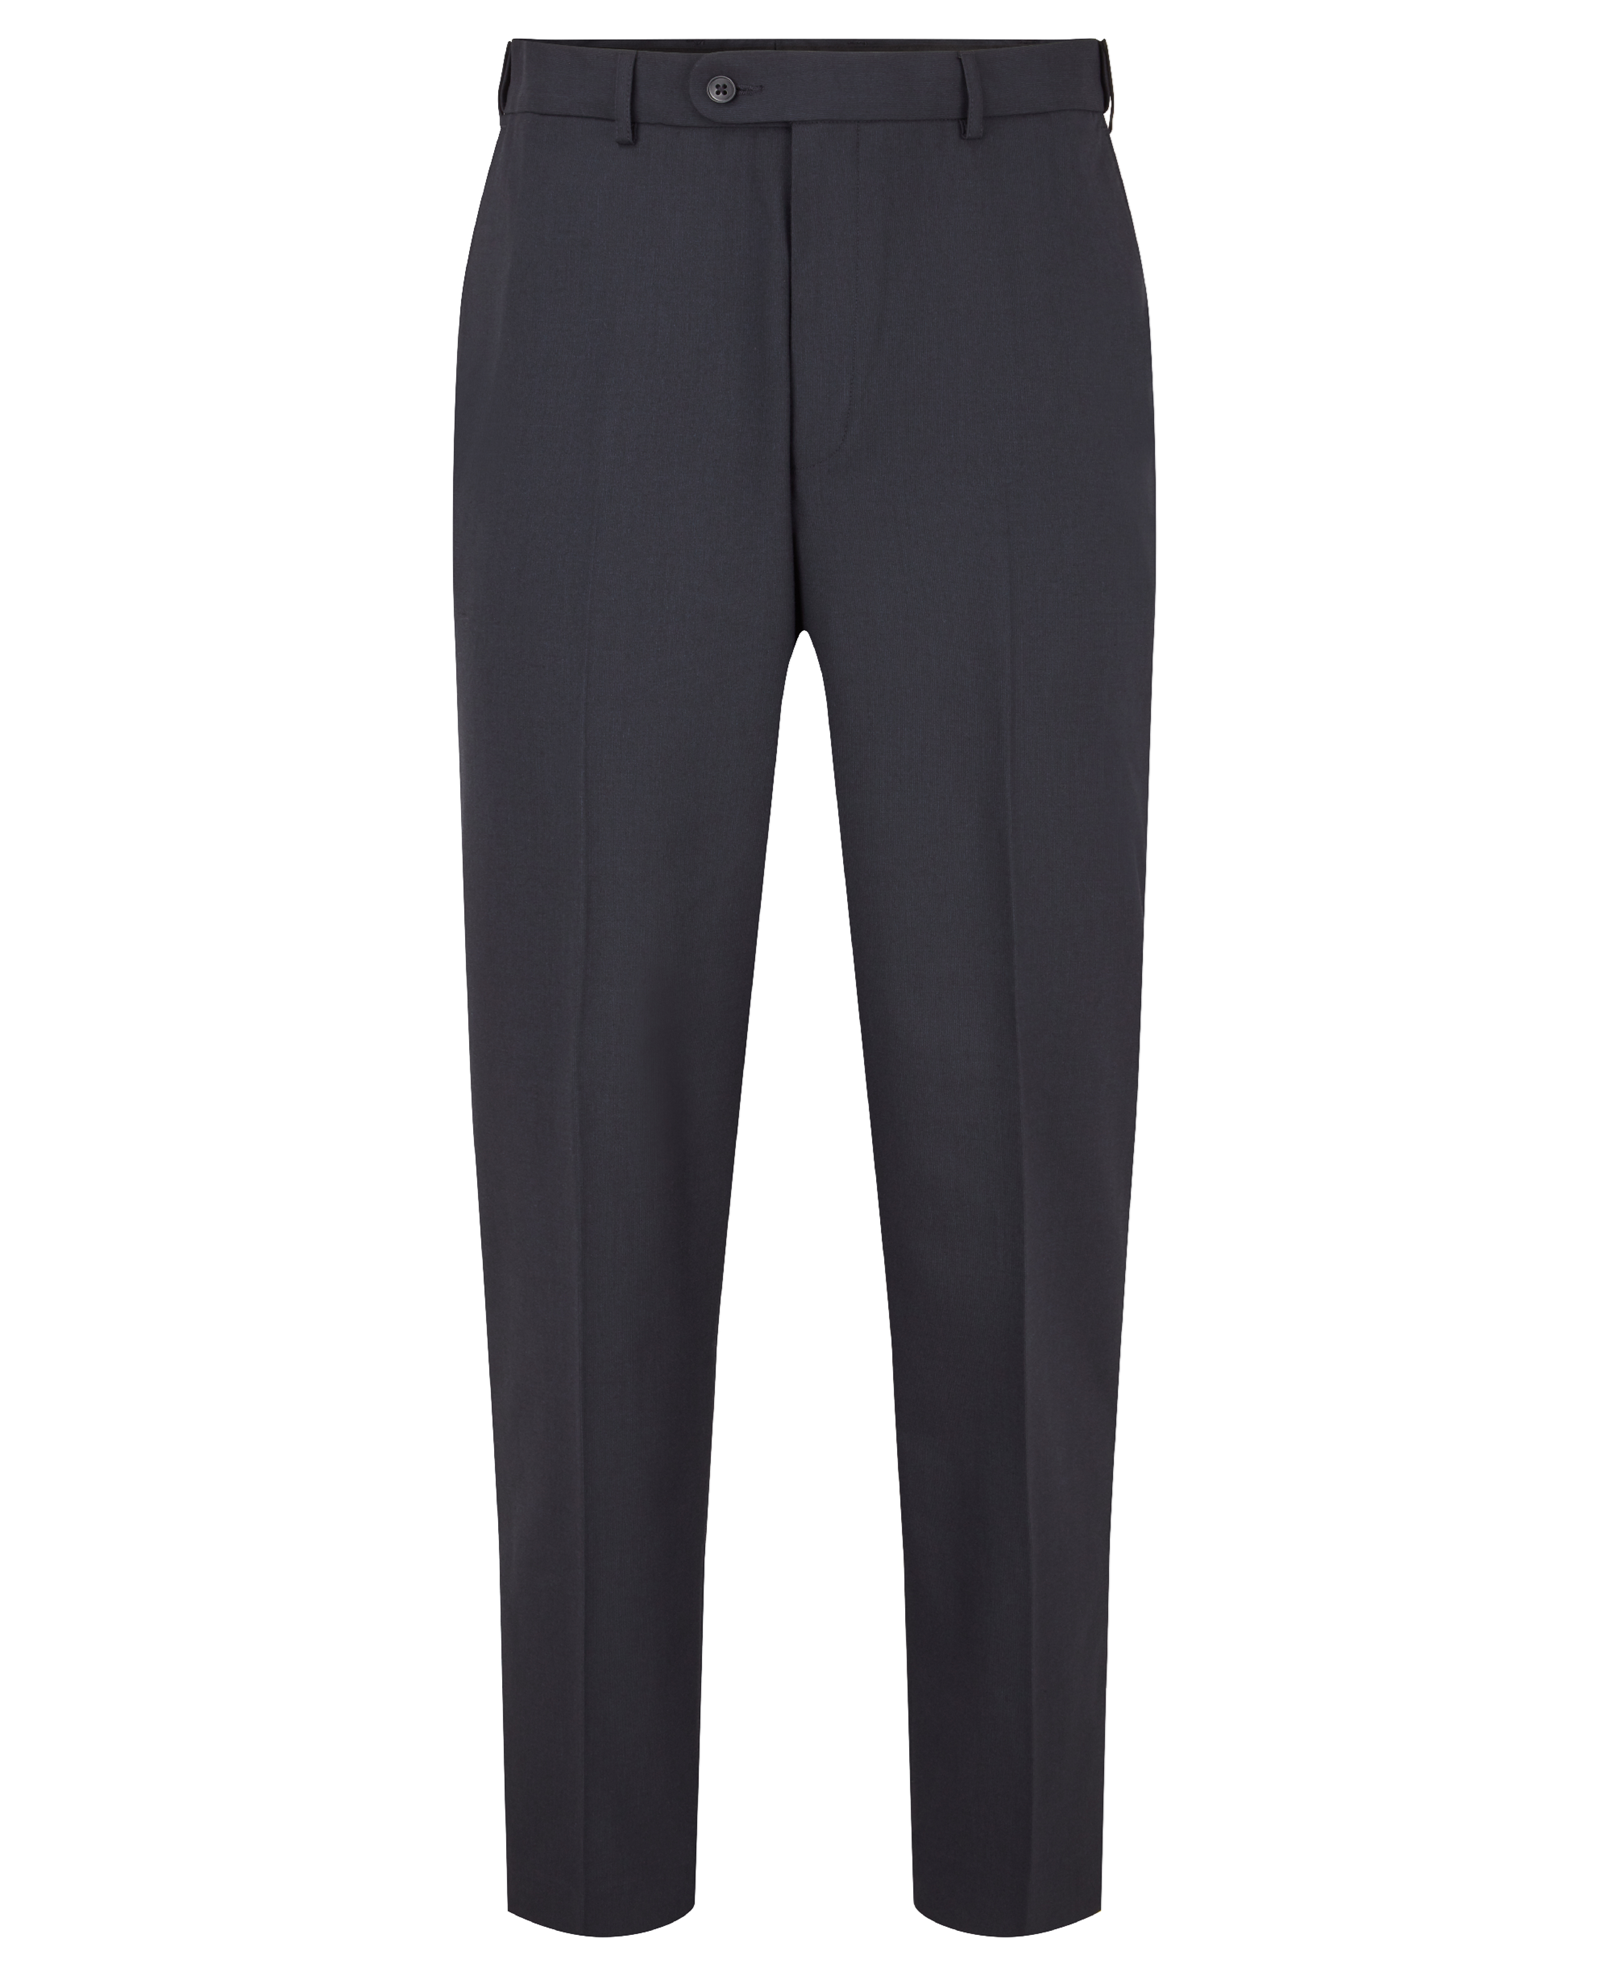 Picture of Edgware Slim Fit Trouser - Black